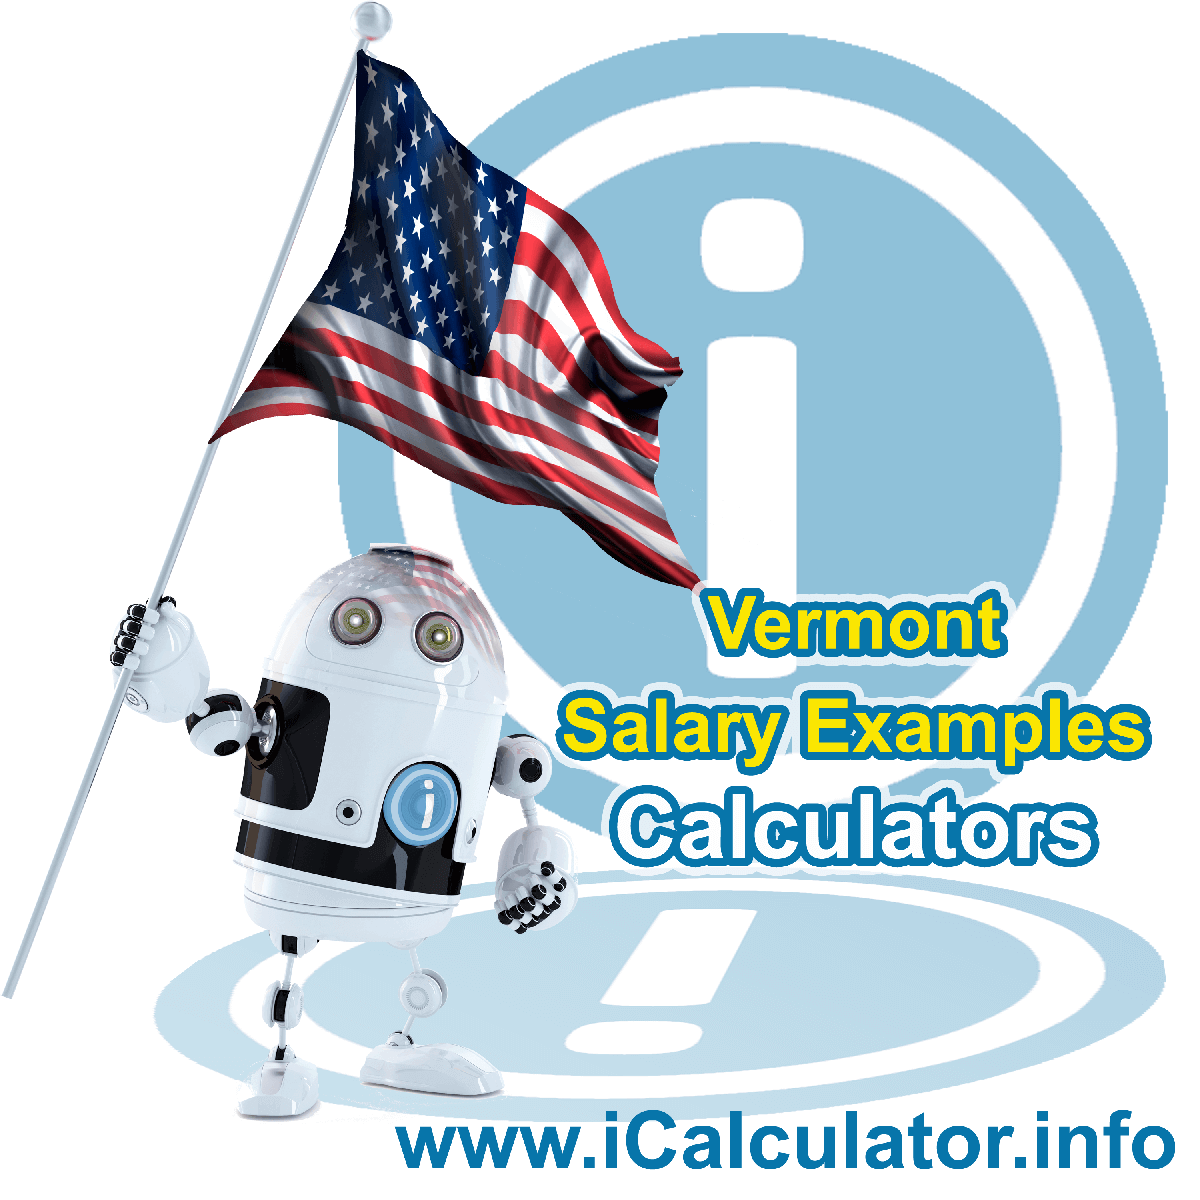 Vermont Salary Example for a $130.00 Annual Salary in 2019 | iCalculator | $130.00 salary example for employee and employer paying Vermont State tincome taxes. Detailed salary after tax calculation including Vermont State Tax, Federal State Tax, Medicare Deductions, Social Security, Capital Gains and other income tax and salary deductions complete with supporting Vermont state tax tables